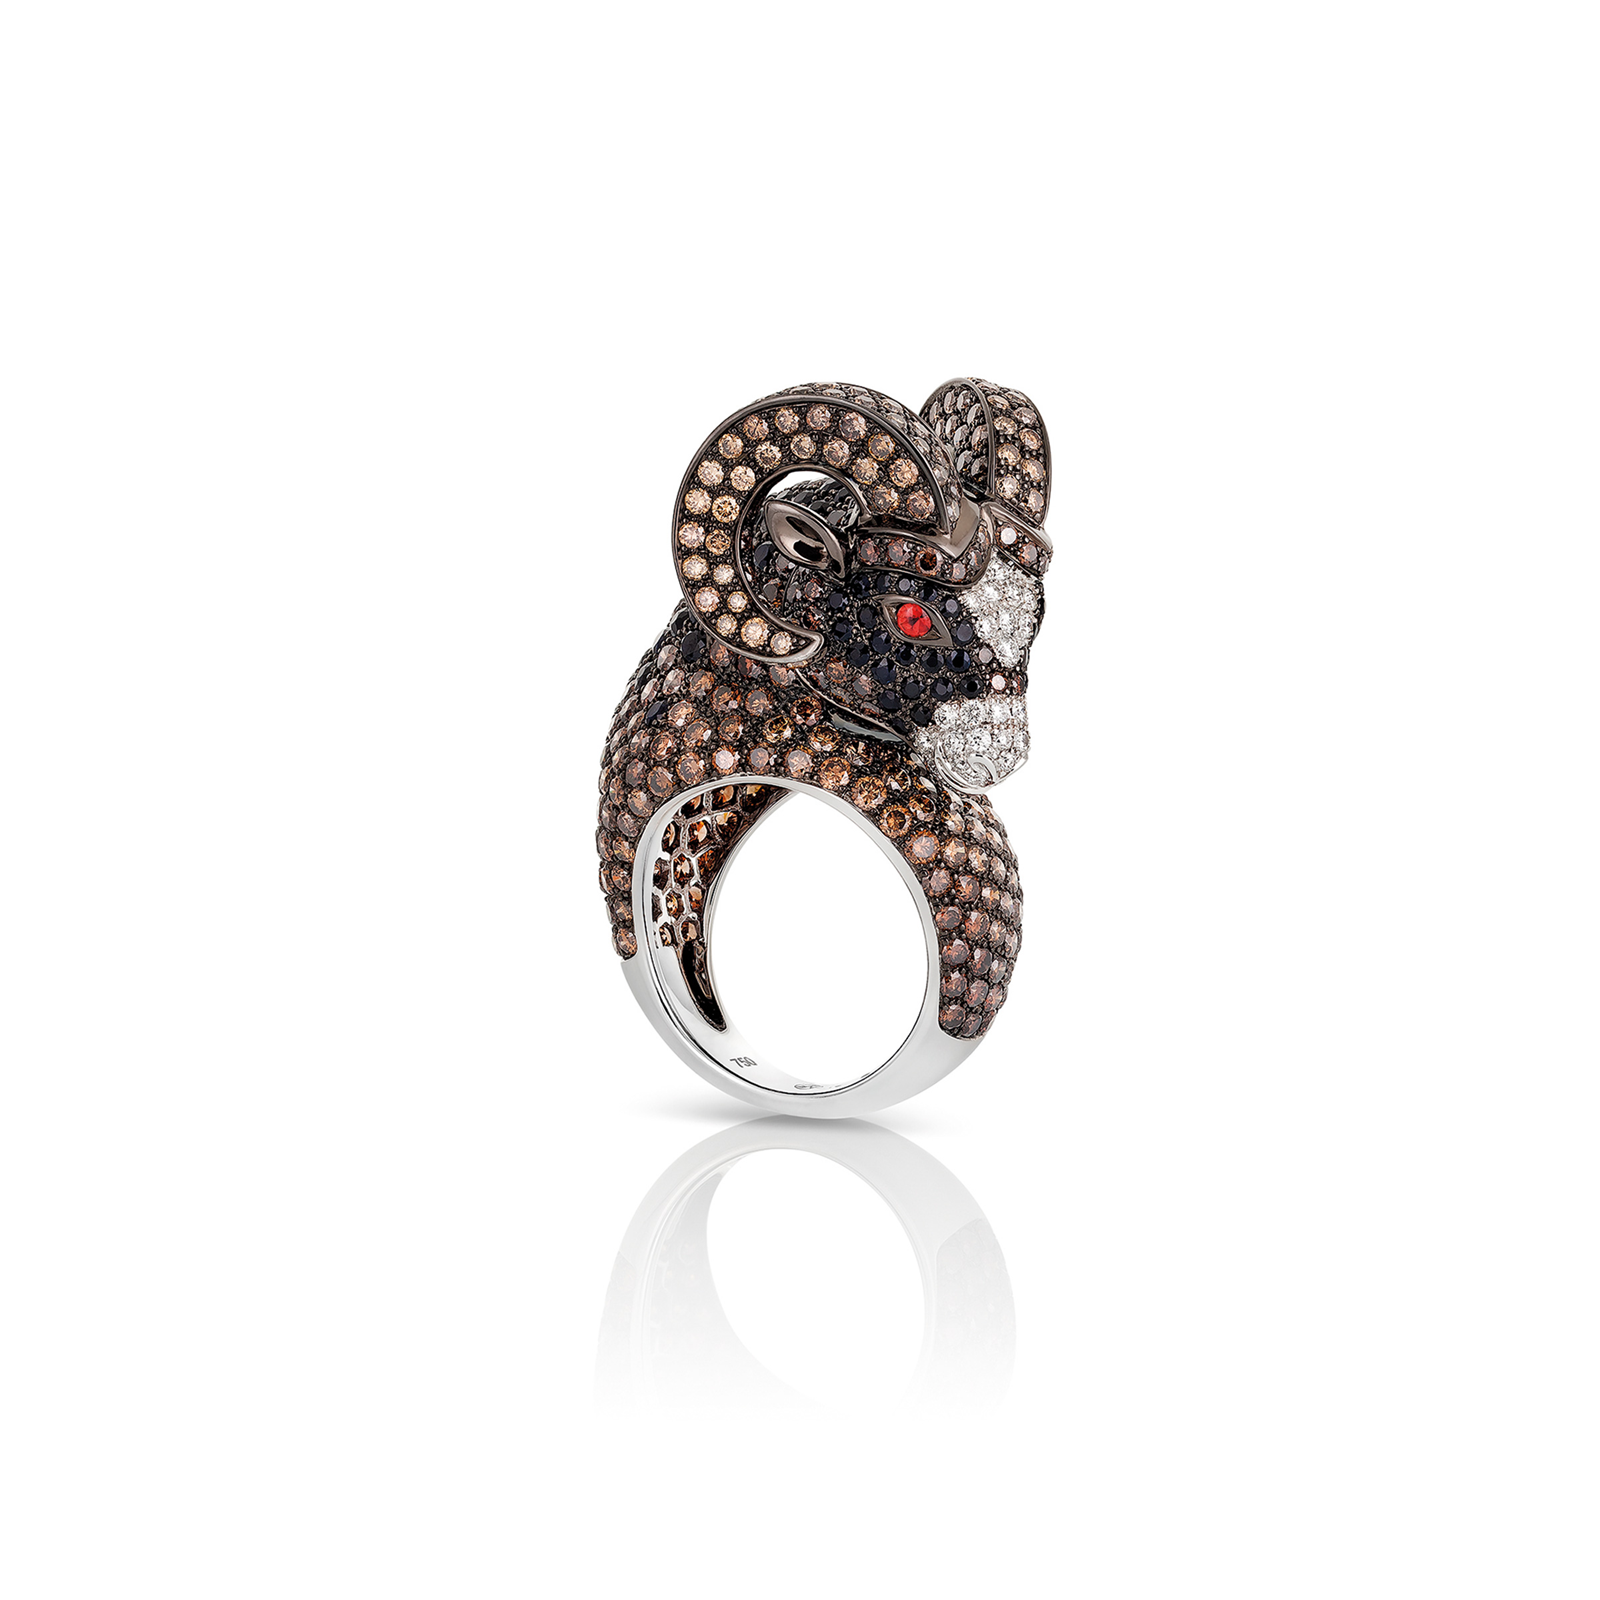 Roberto Coin Animalier Aries Diamond Ring - Ring Size M